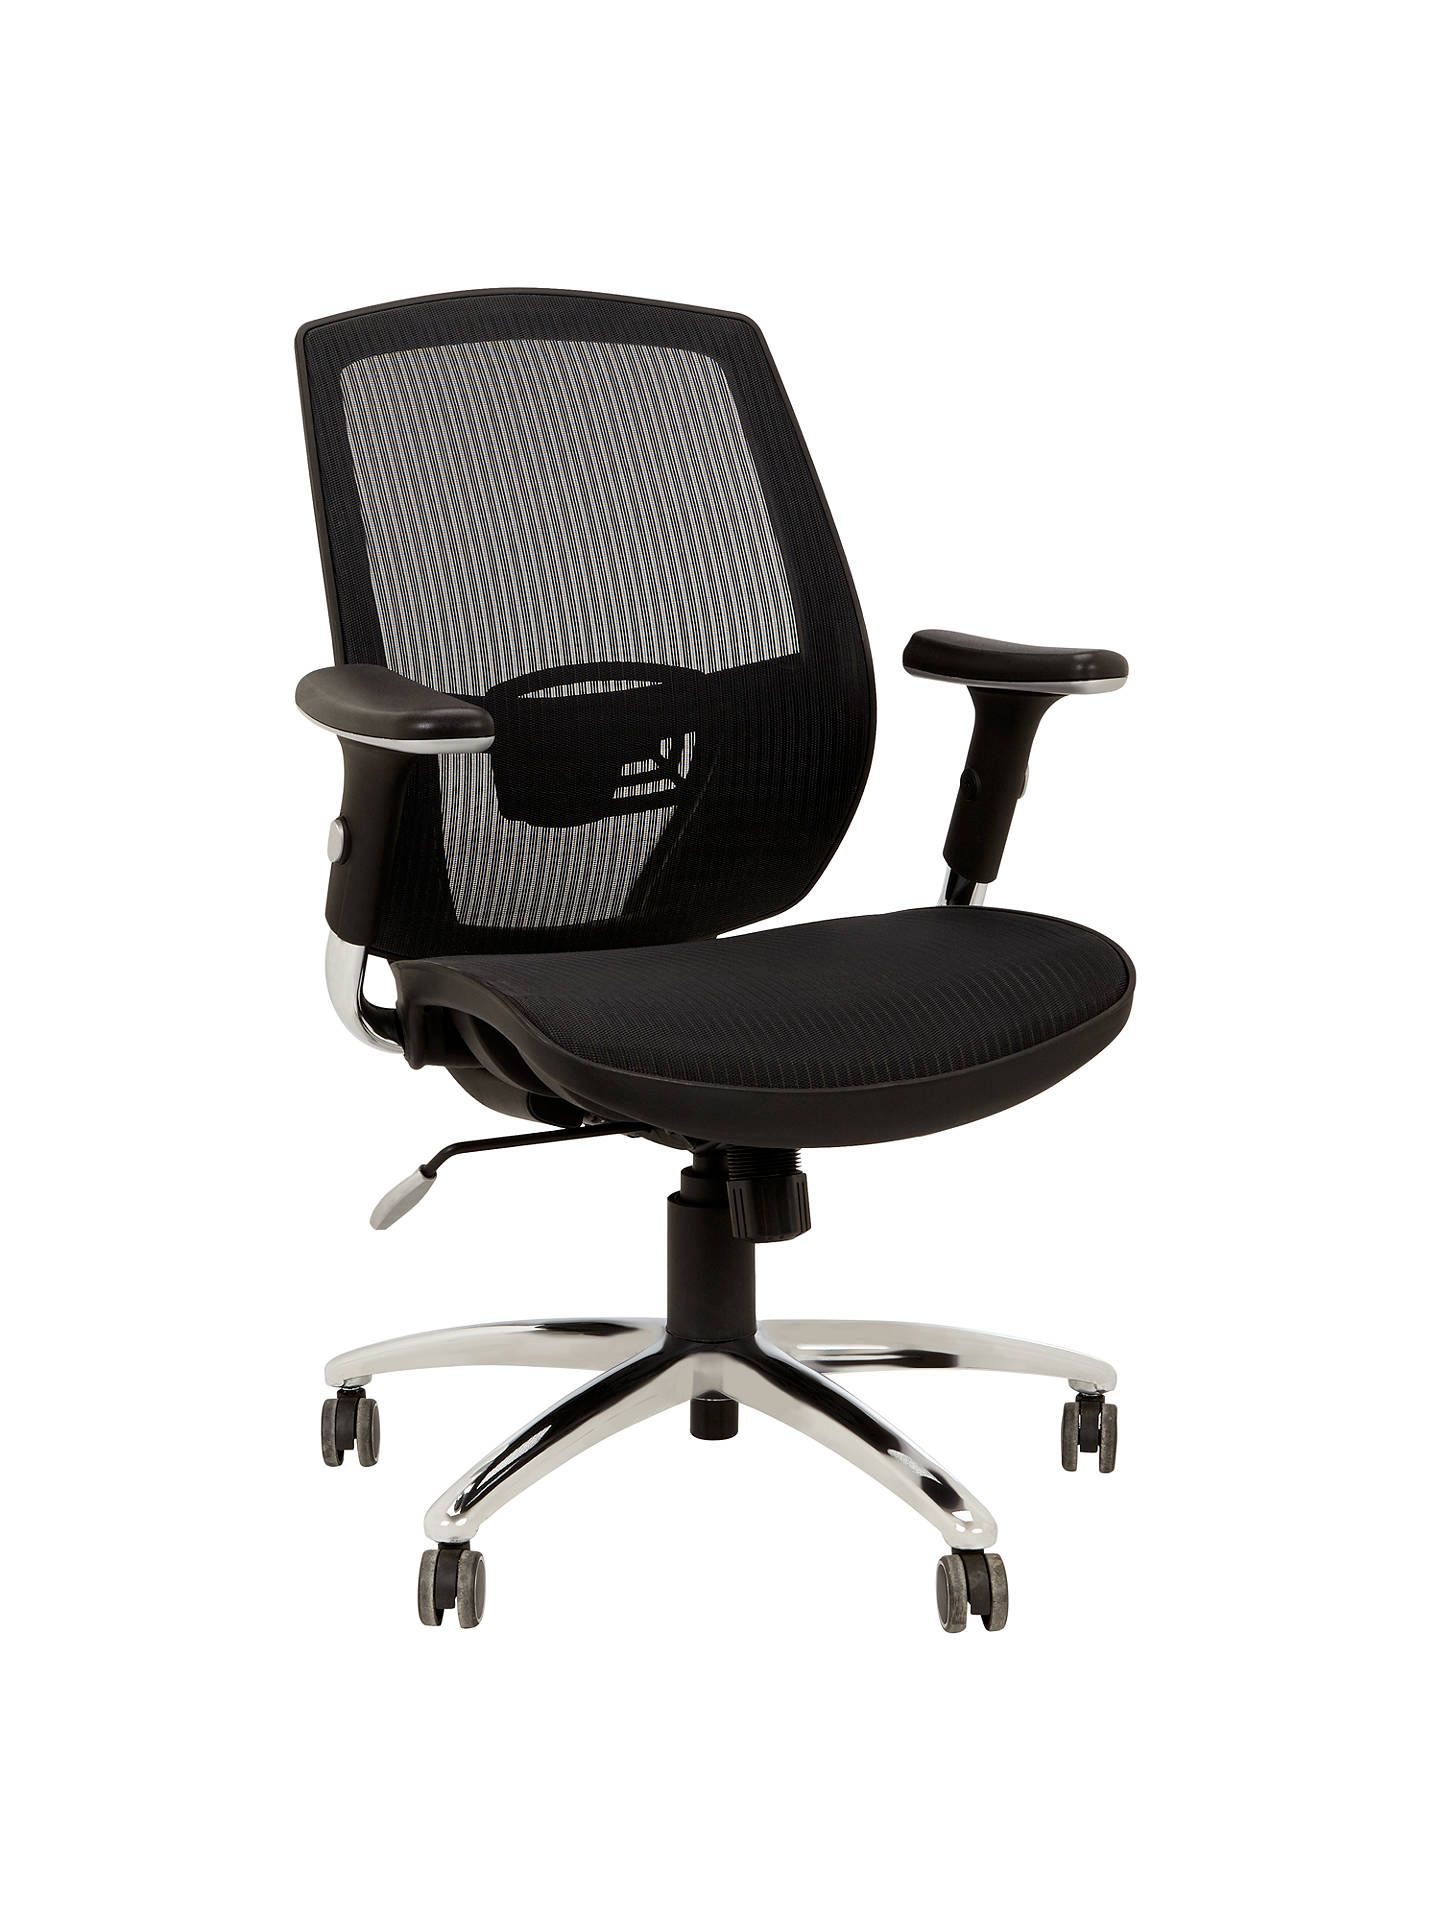 Pin by stillusesapencil on summer '19 Office chair